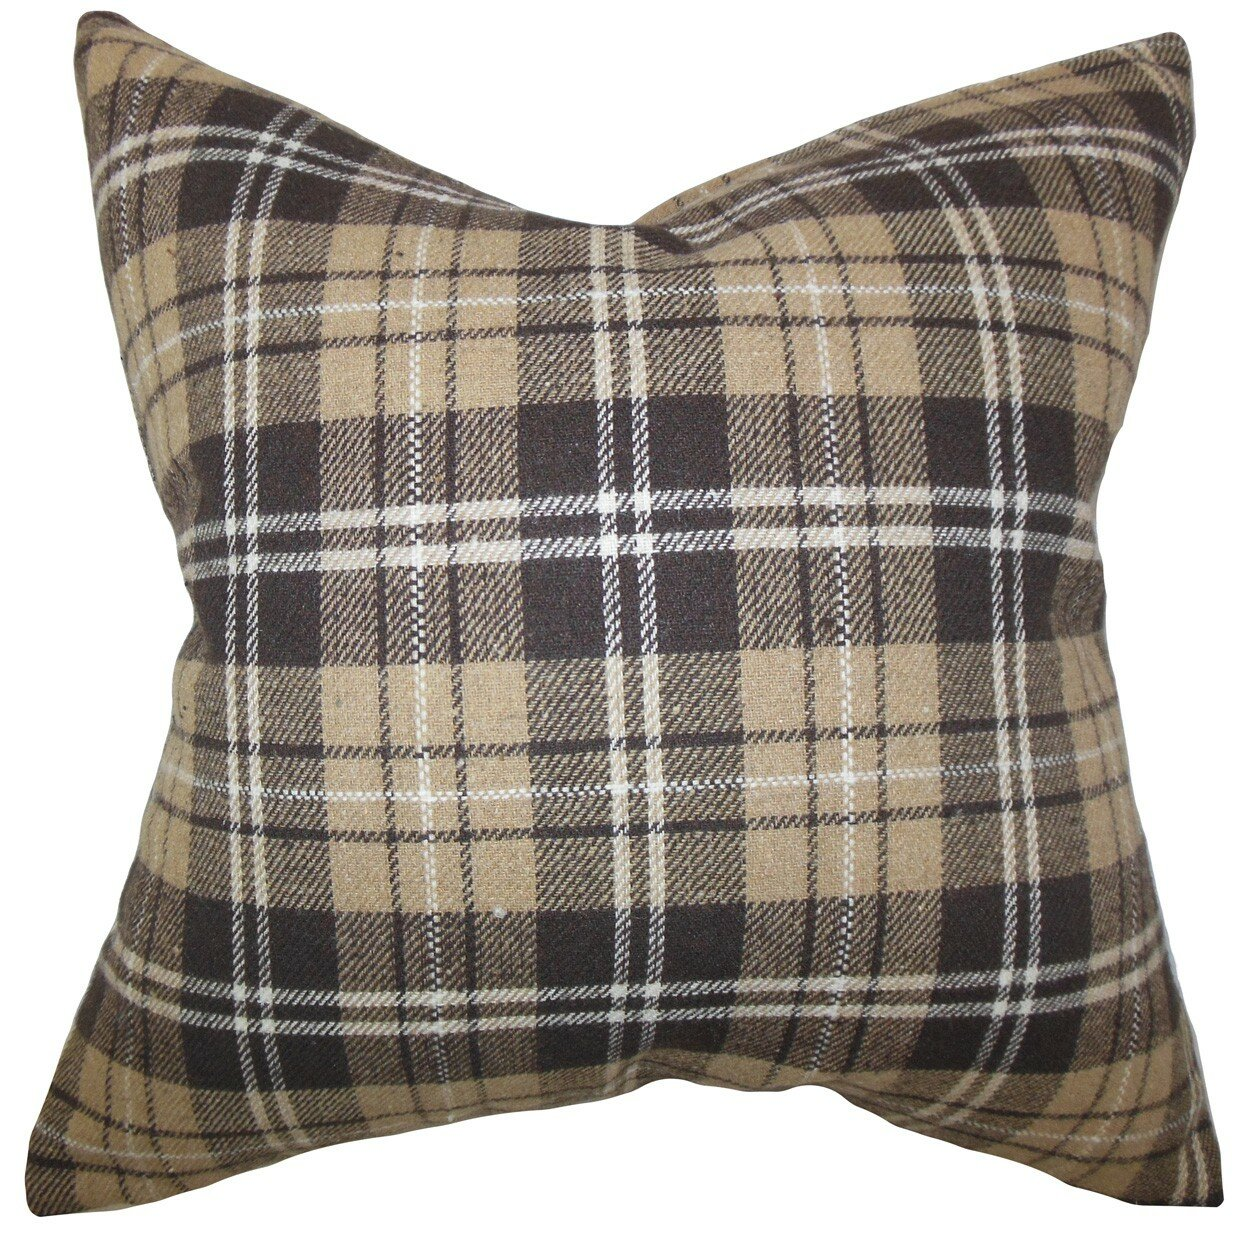 The Pillow Collection Baxley Plaid Wool Throw Pillow